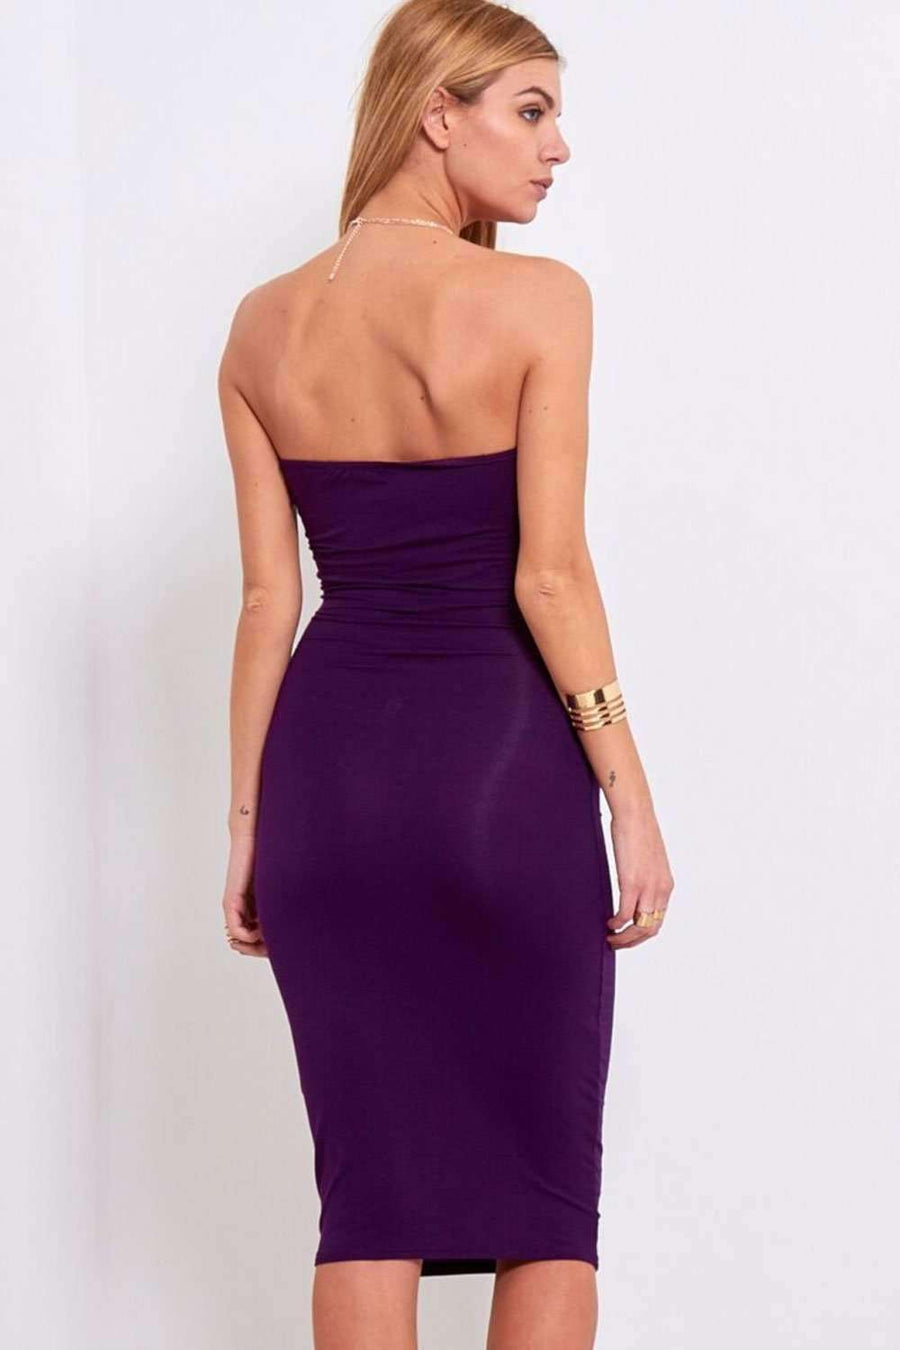 Adelaide Bandeau Strapless Bodycon Dress - bejealous-com